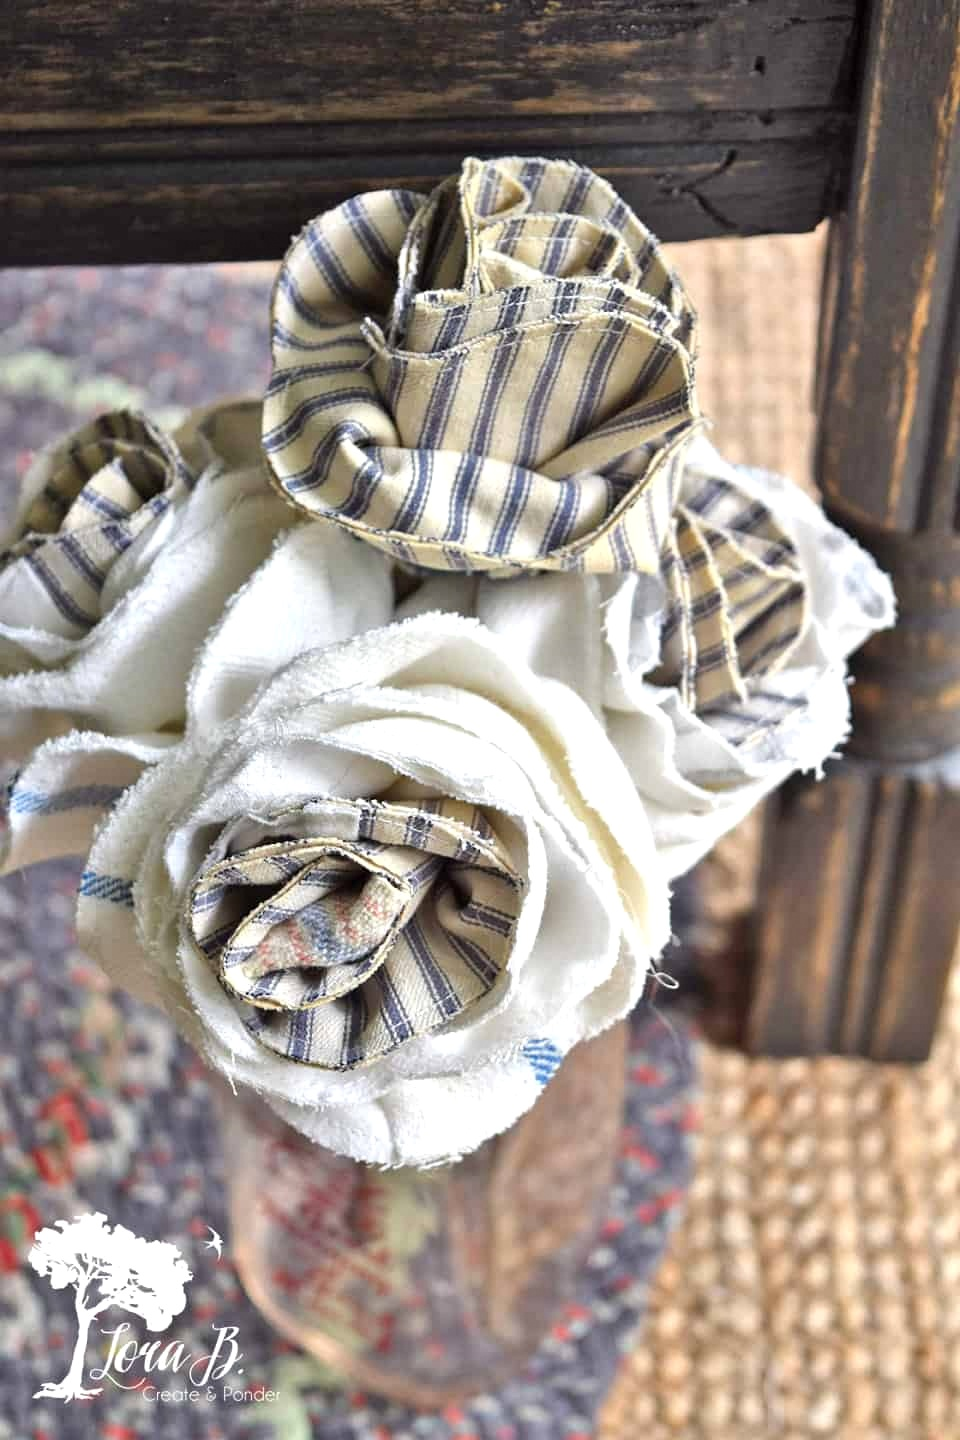 Fabric ticking farmhouse flowers by Lora B, featured on DIY Salvaged Junk Projects 536 on Funky Junk!